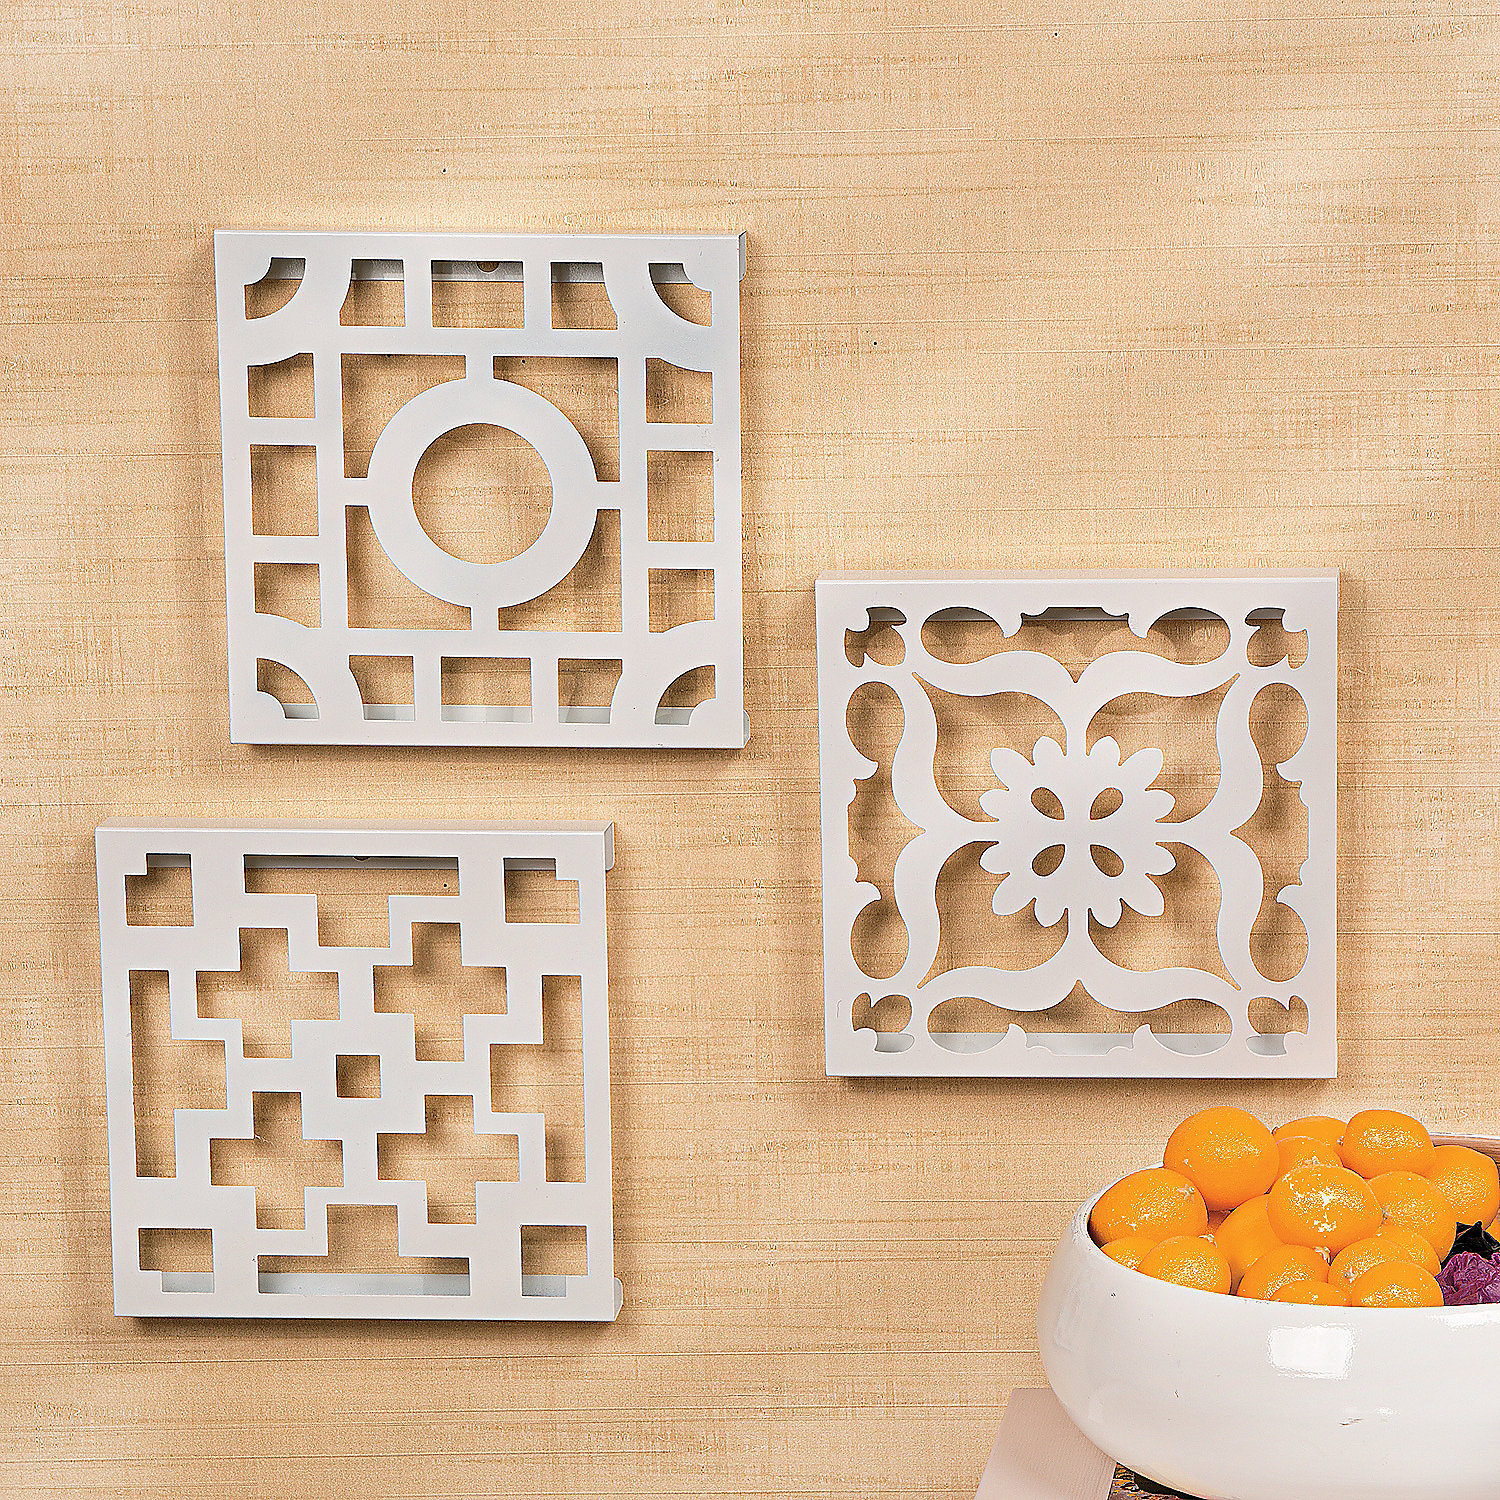 Laser Cut Wall Art : Home decor accents holiday decorations accessories